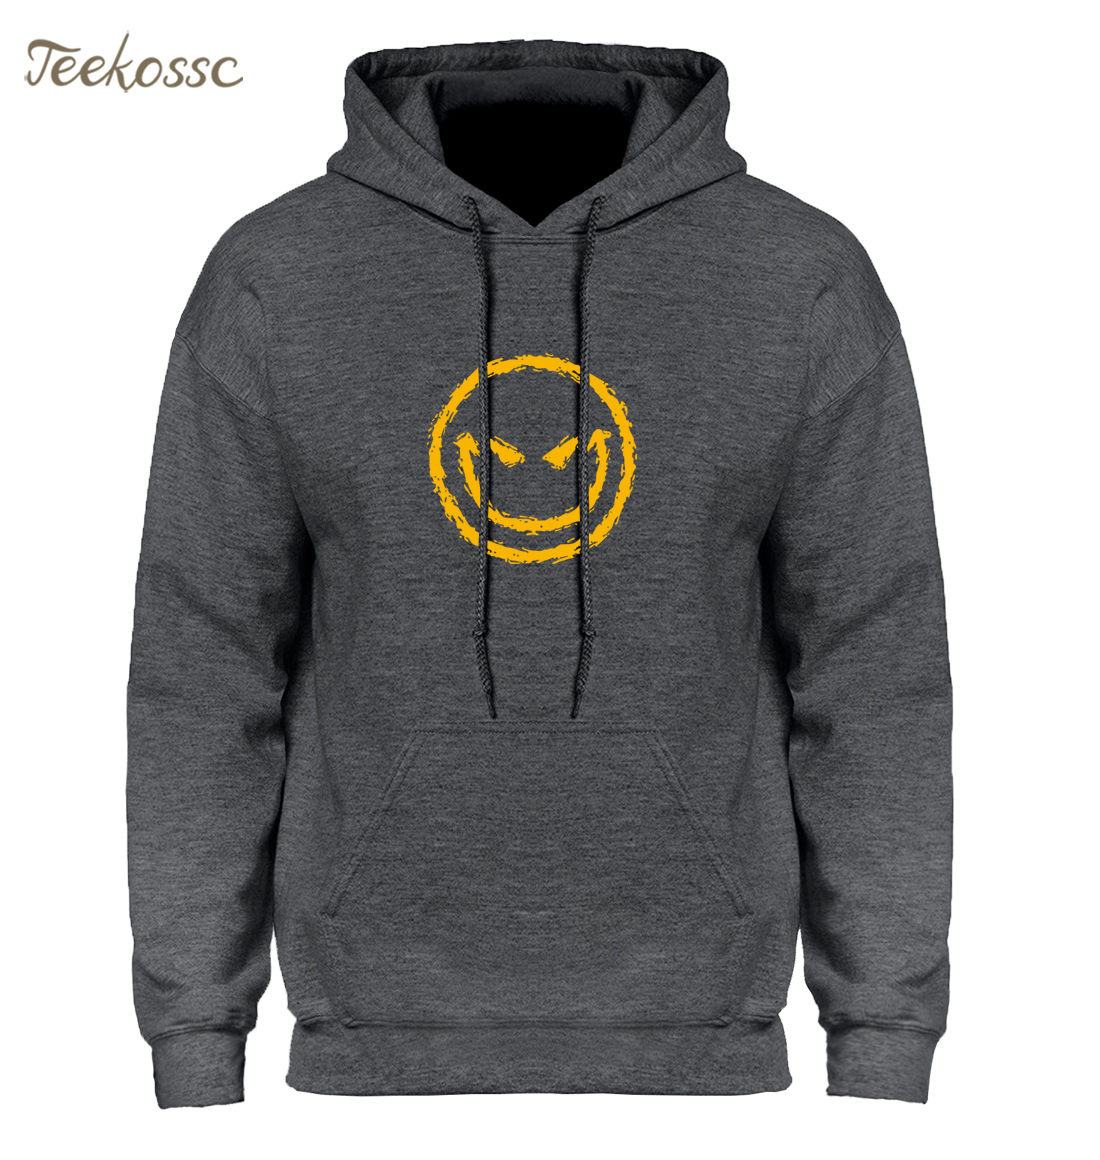 Evil Smiley Face Hoodie Men Black Blue Hoodies Mens Loose Hooded Sweatshirt 2018 Winter Autumn Fleece Warm Hip Hop Streetwear